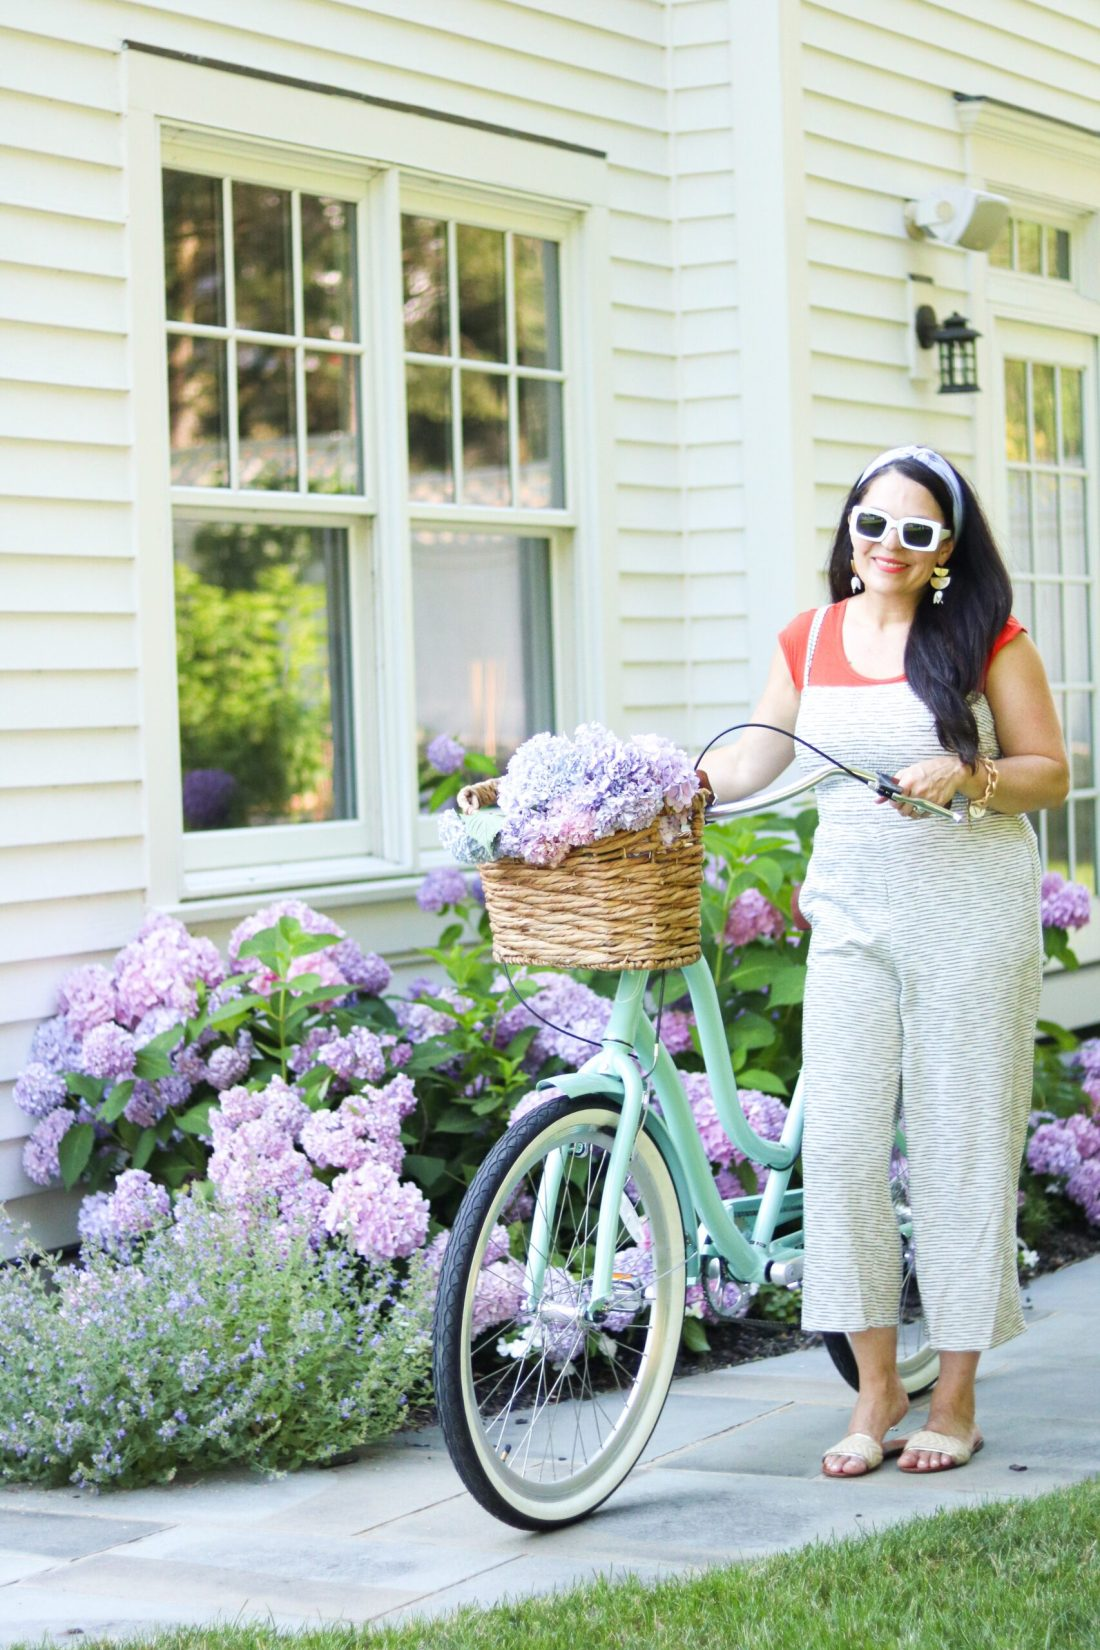 Cutest bike cruiser to enjoy at the beach, around the neighborhood, or the city || Darling Darleen Top CT lifestyle blogger 3 favorite simple summer activities that we like to do as a family and is budget friendly will create lasting memories. || DARLING darleen Top CT Lifestyle Blogger